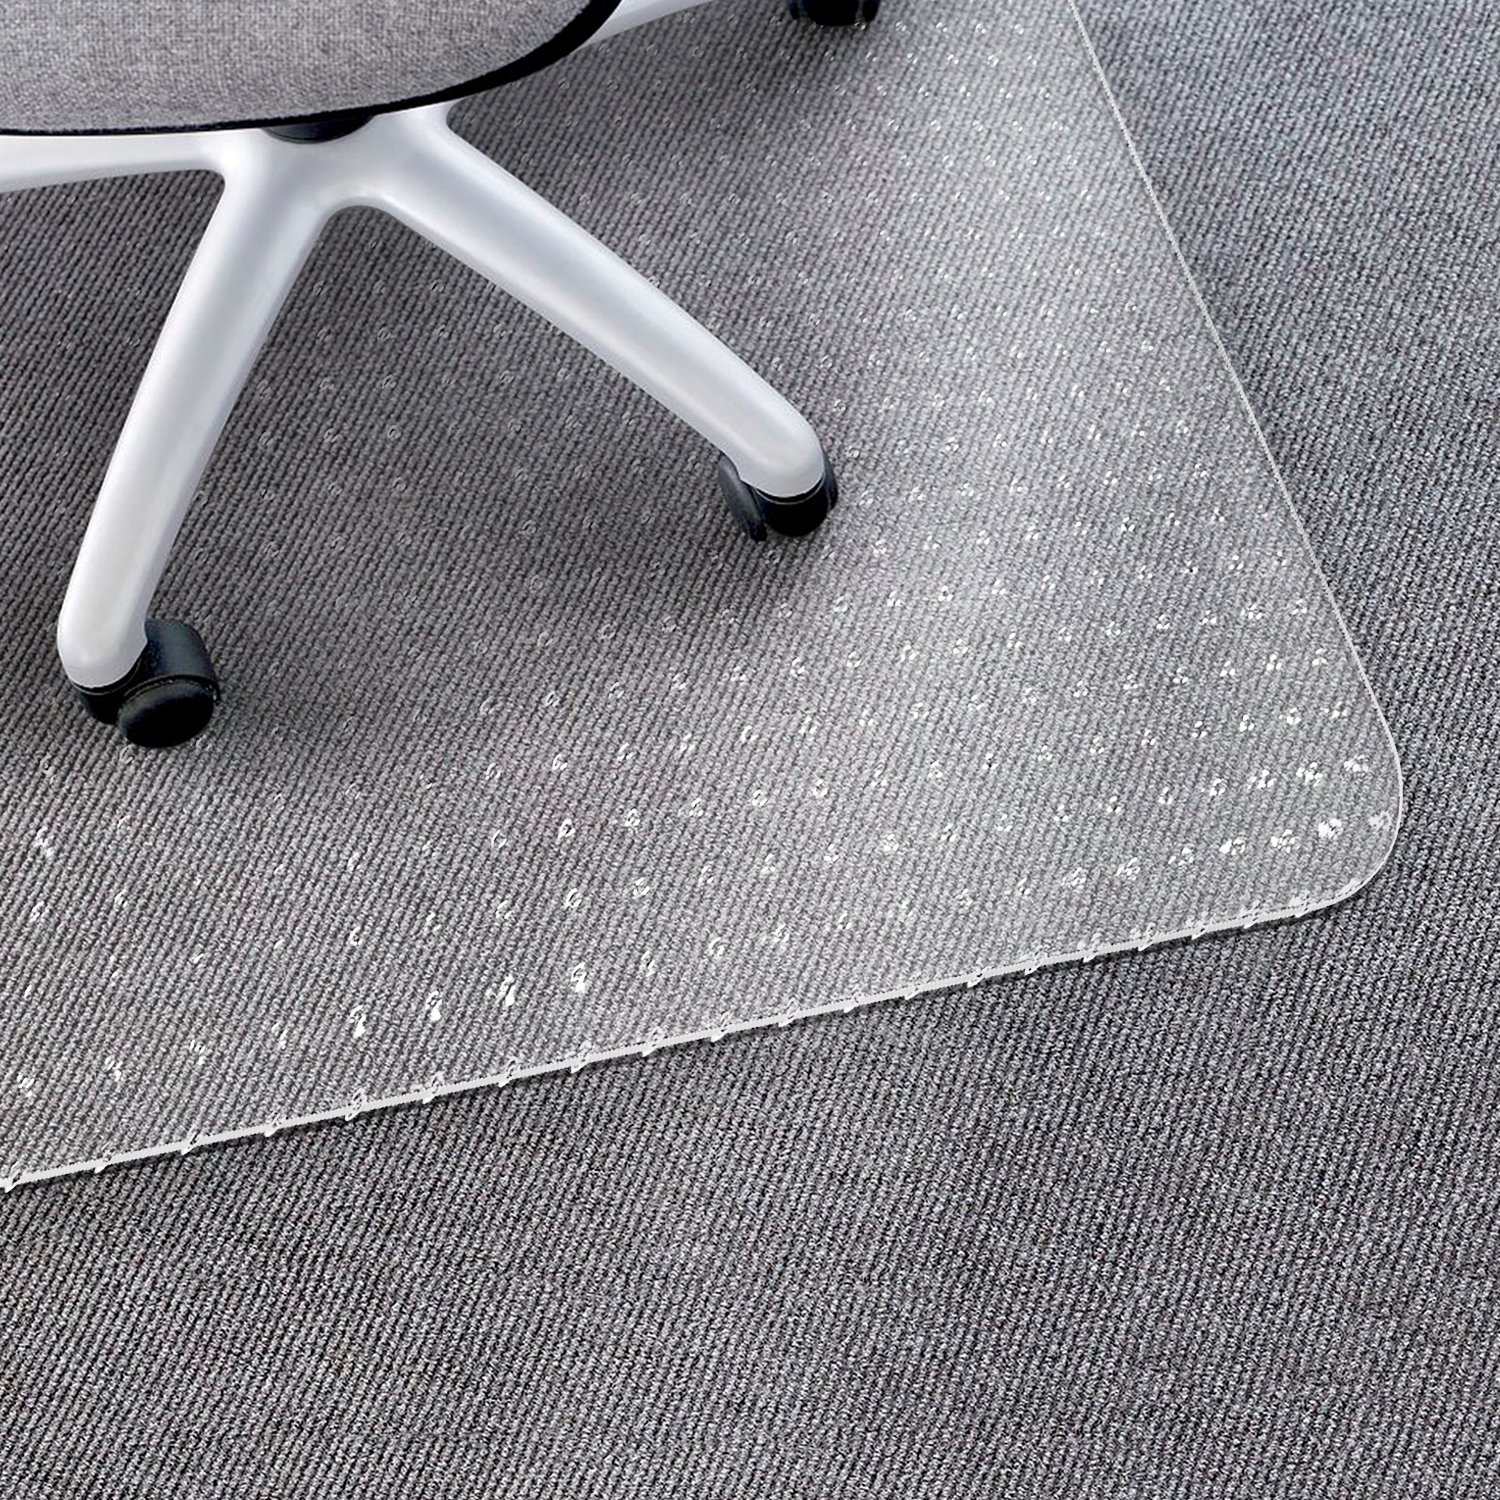 Matladin Heavy Duty PVC Chair Mat, 1/8 inches Transparent Desk Chair Mat,for Carpeted Low Standard Medium Flooring Protector for Office